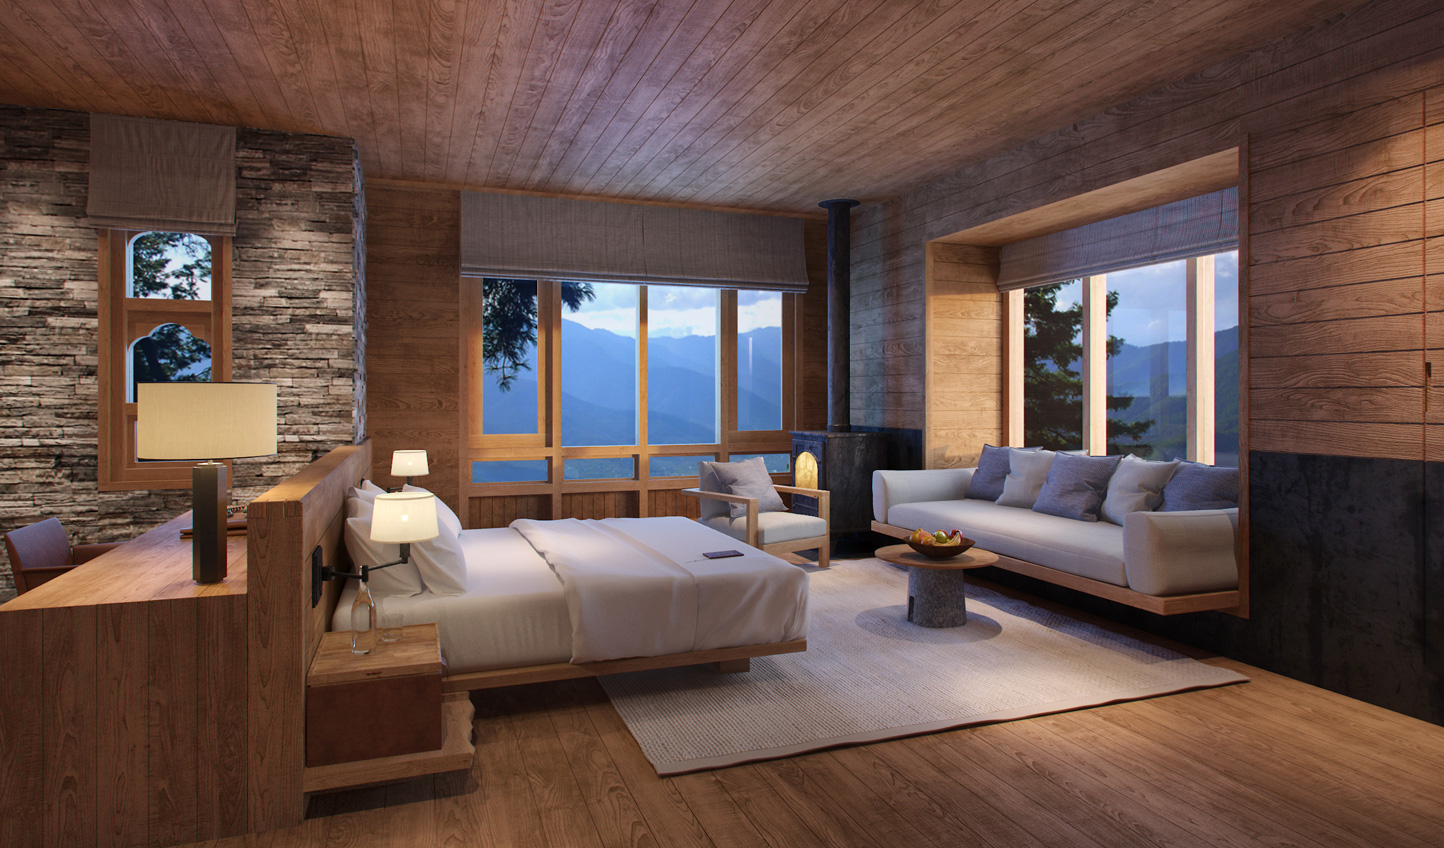 Sleep soundly at Six Senses Paro